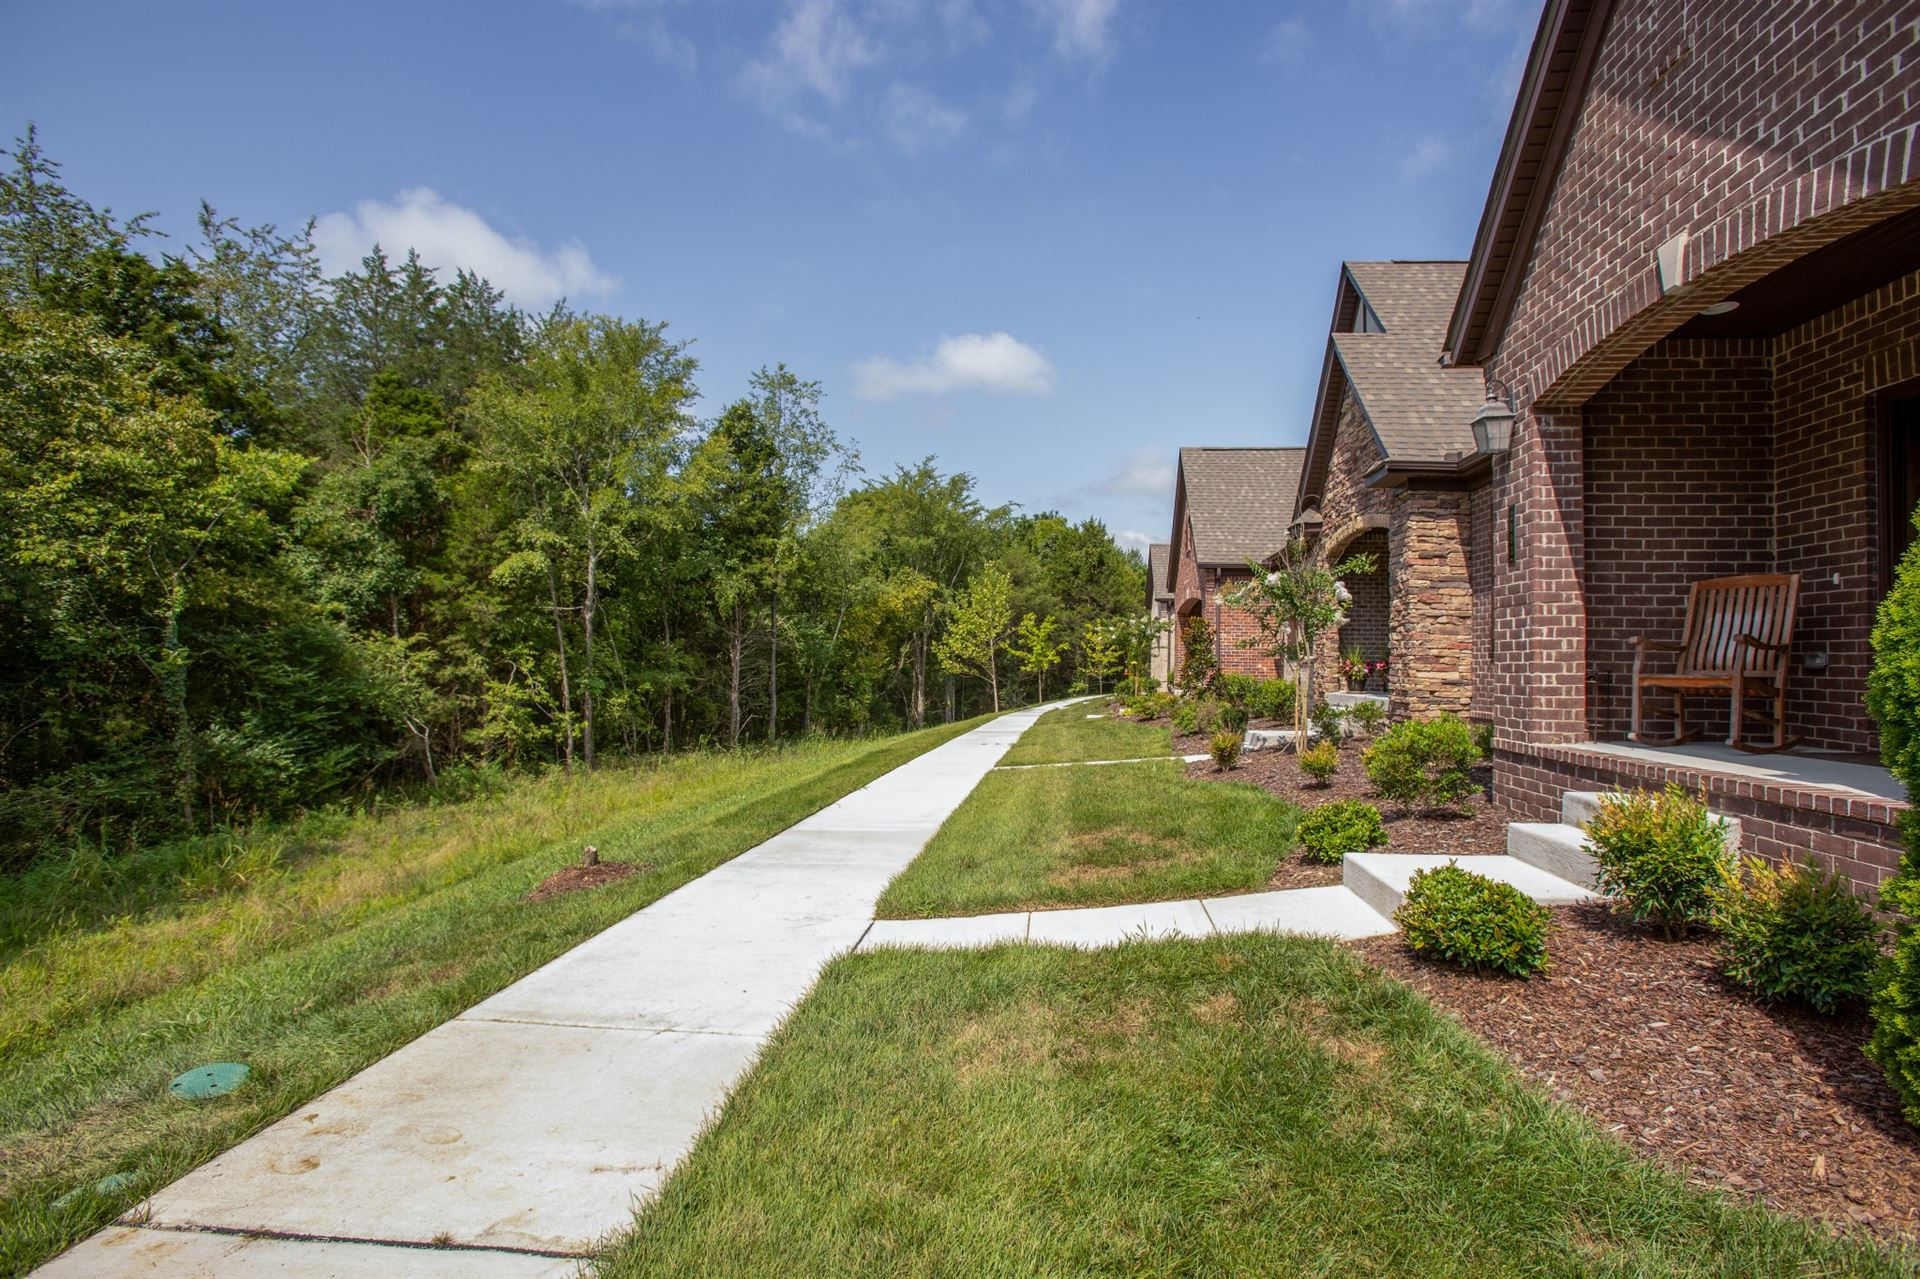 Photo of 2093 Moultrie Cir, Franklin, TN 37064 (MLS # 2177252)